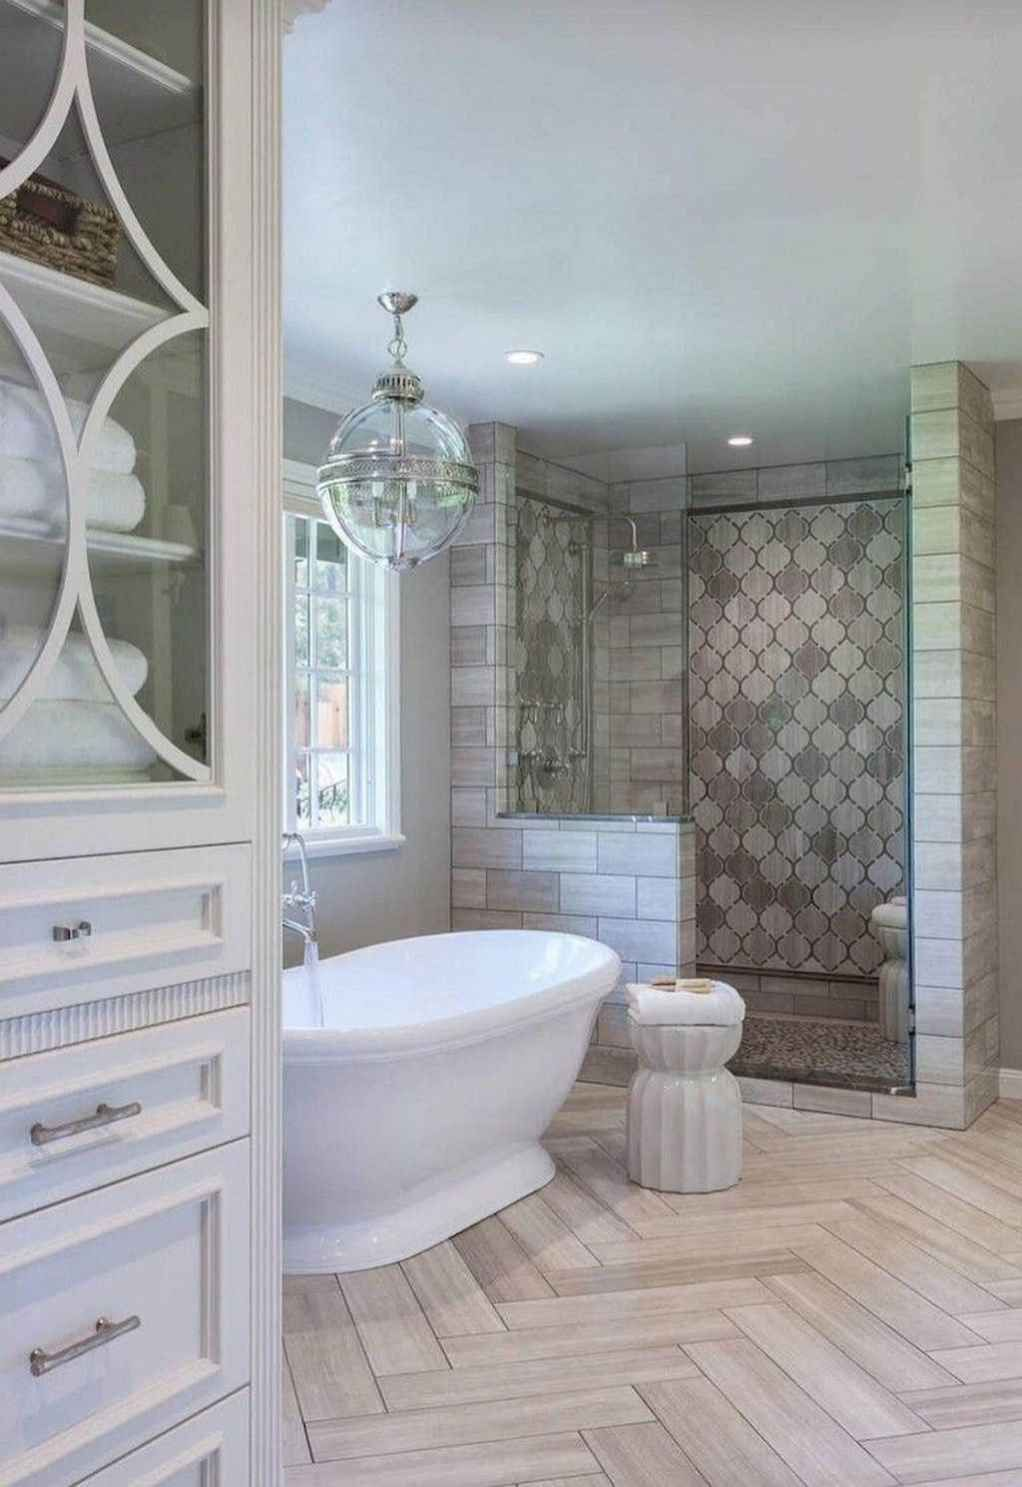 65 awesome farmhouse bathroom tile floor decor ideas дизайн on beautiful farmhouse bathroom shower decor ideas and remodel an extraordinary design id=25493